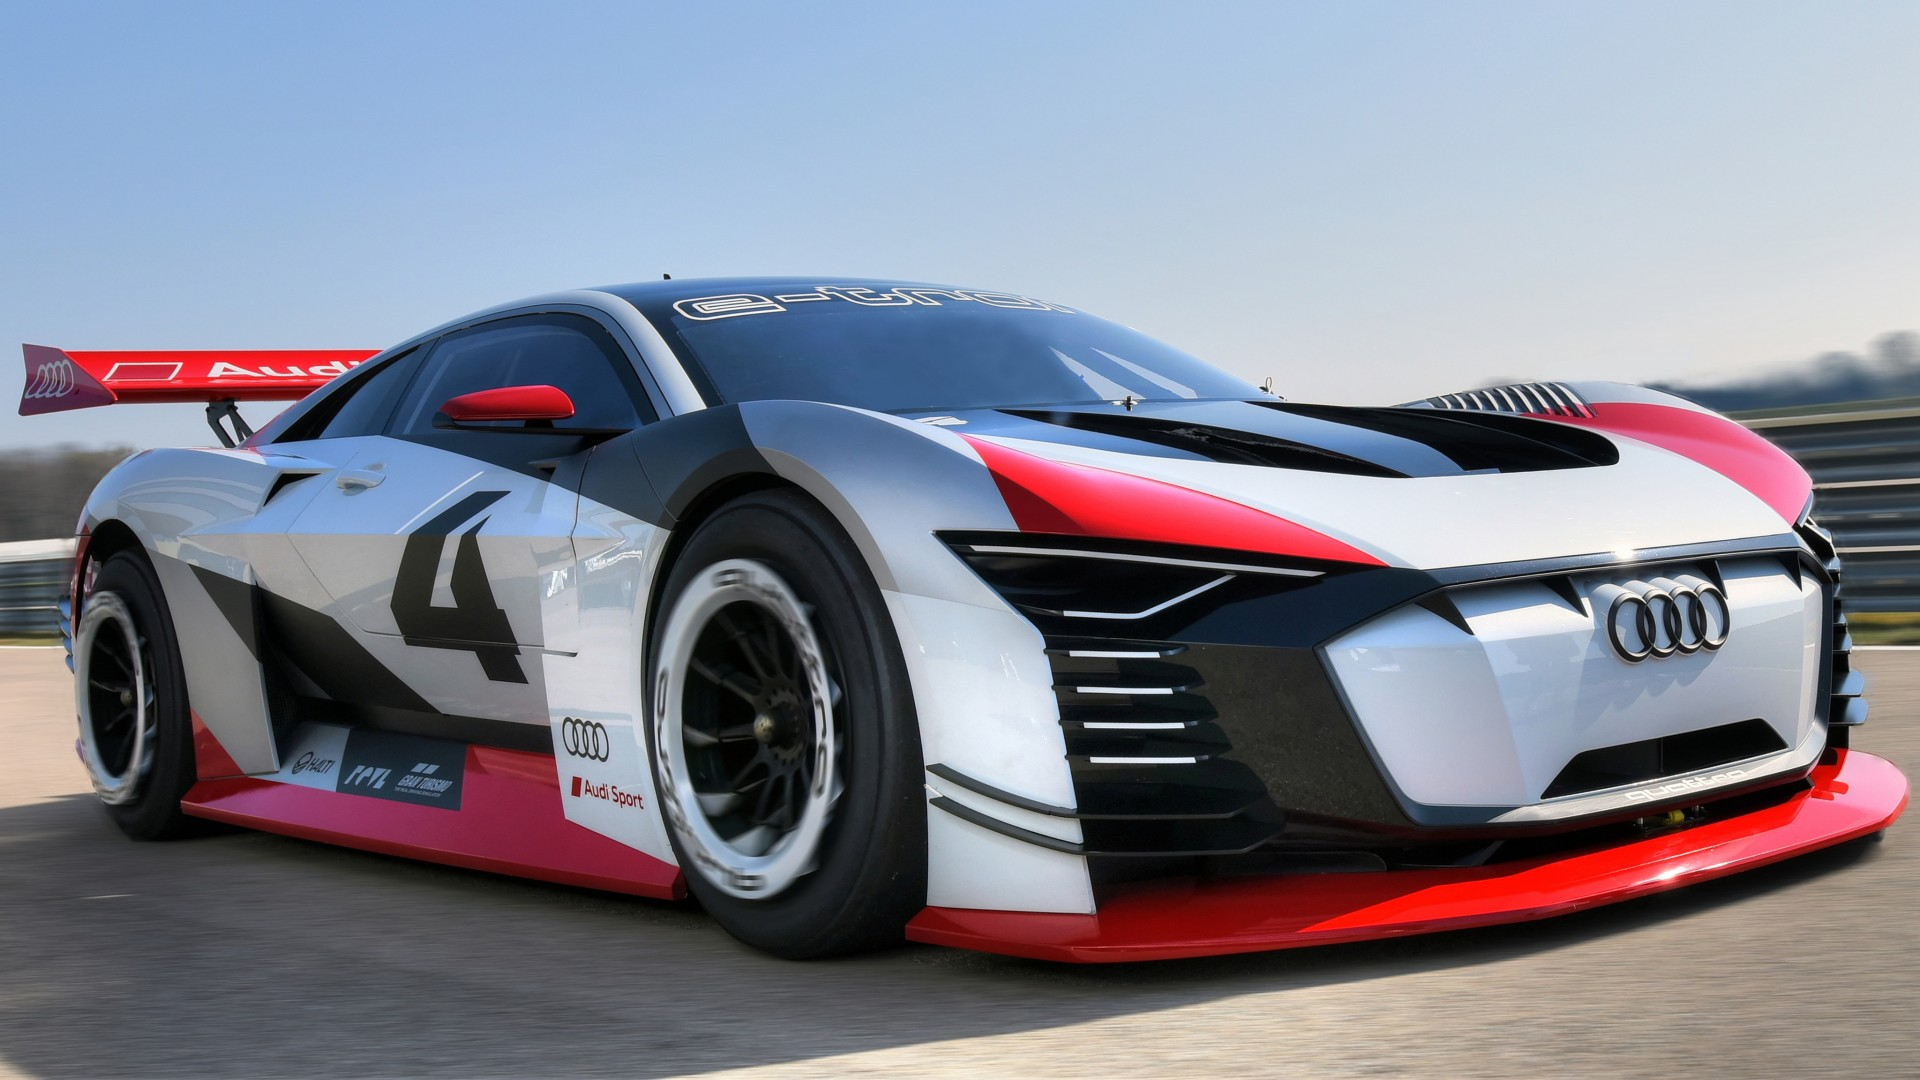 2018 Audi E Tron Vision Gran Turismo 4K Wallpaper HD Car